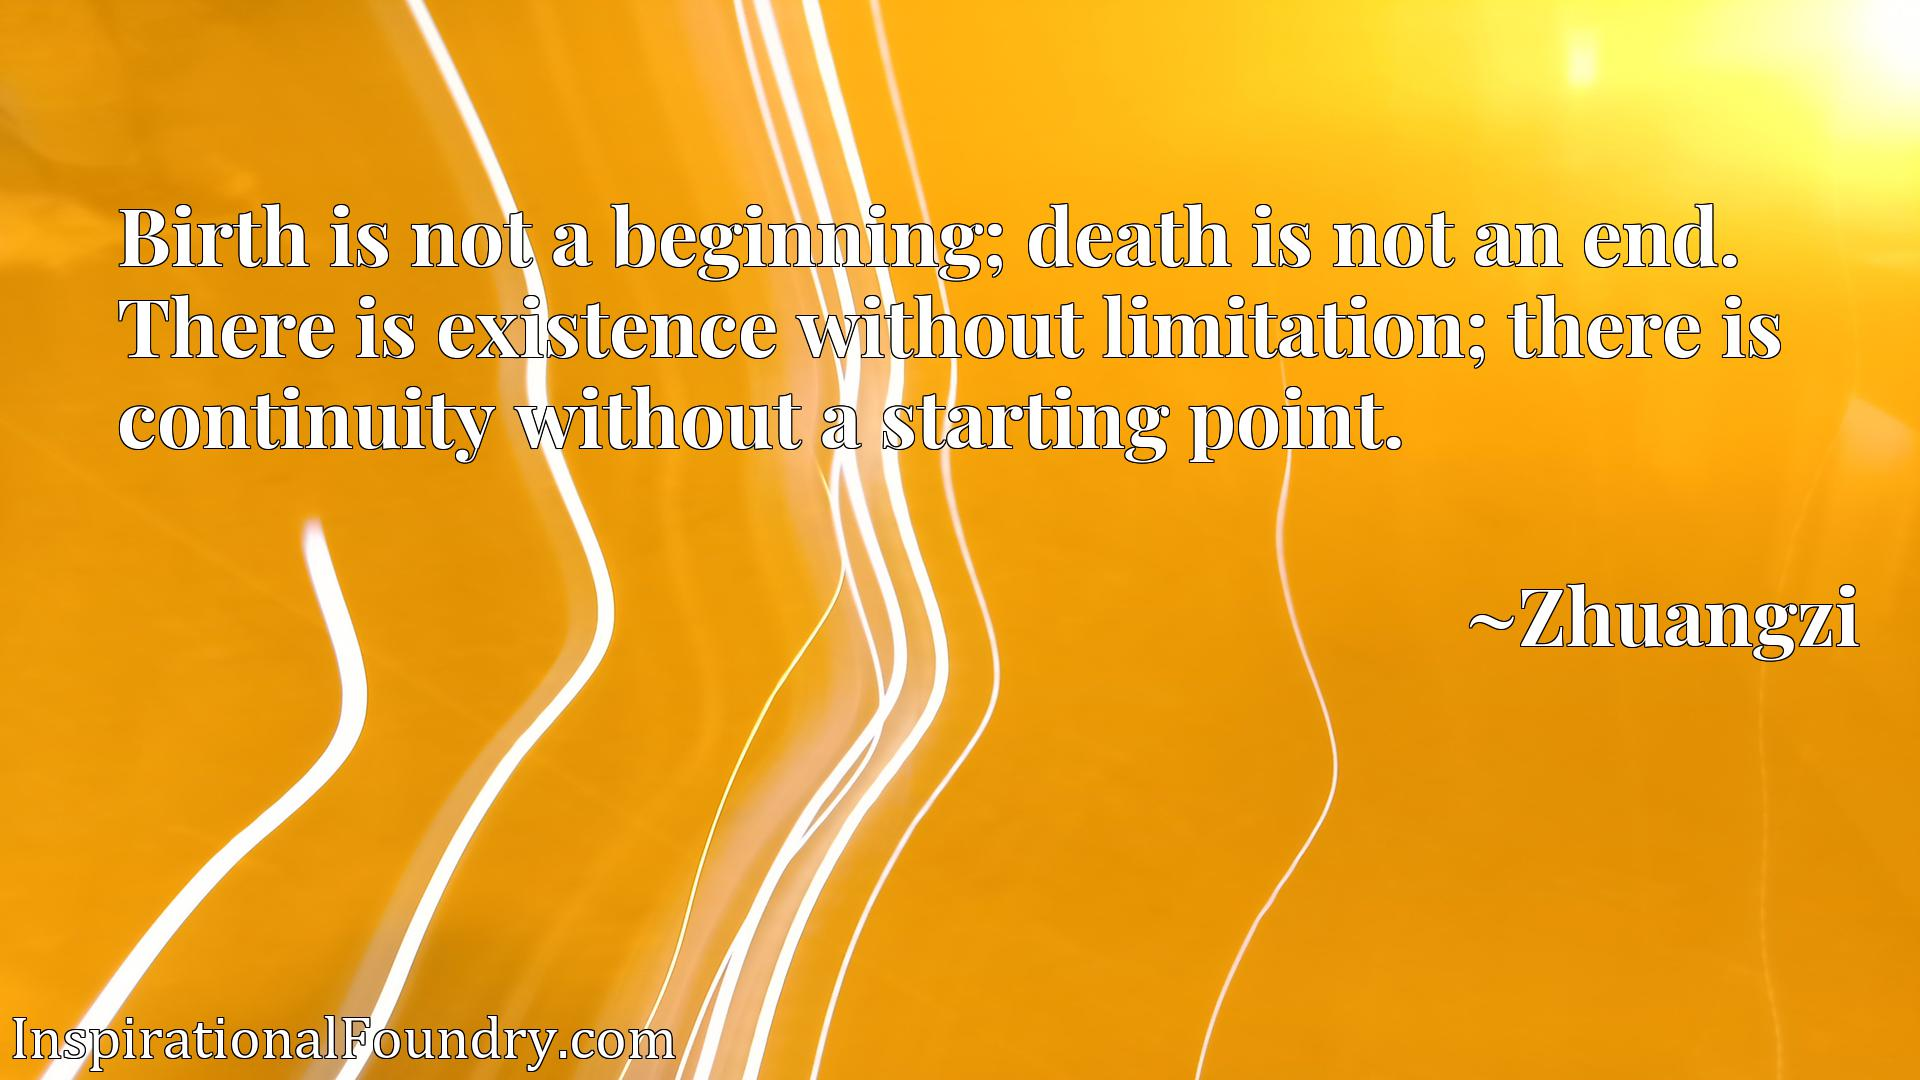 Birth is not a beginning; death is not an end. There is existence without limitation; there is continuity without a starting point.